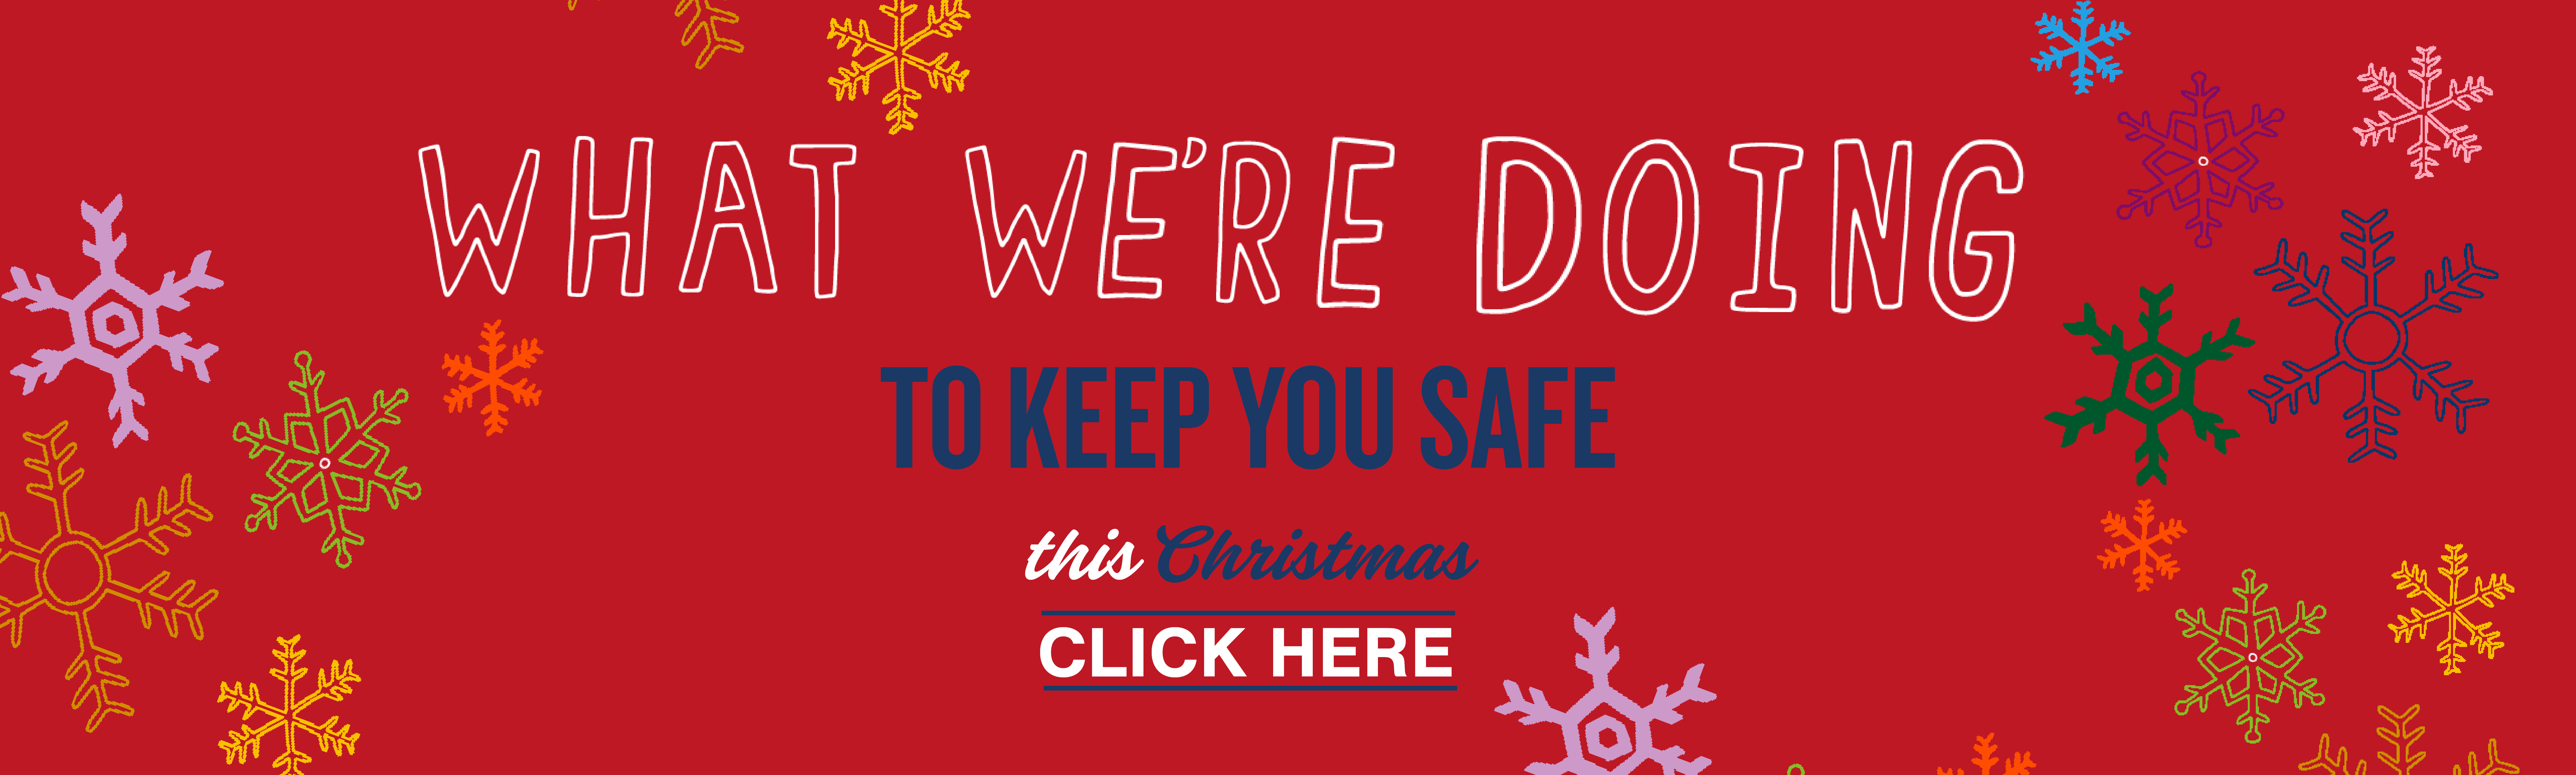 Web banner _ keeping you safe this christmas -1